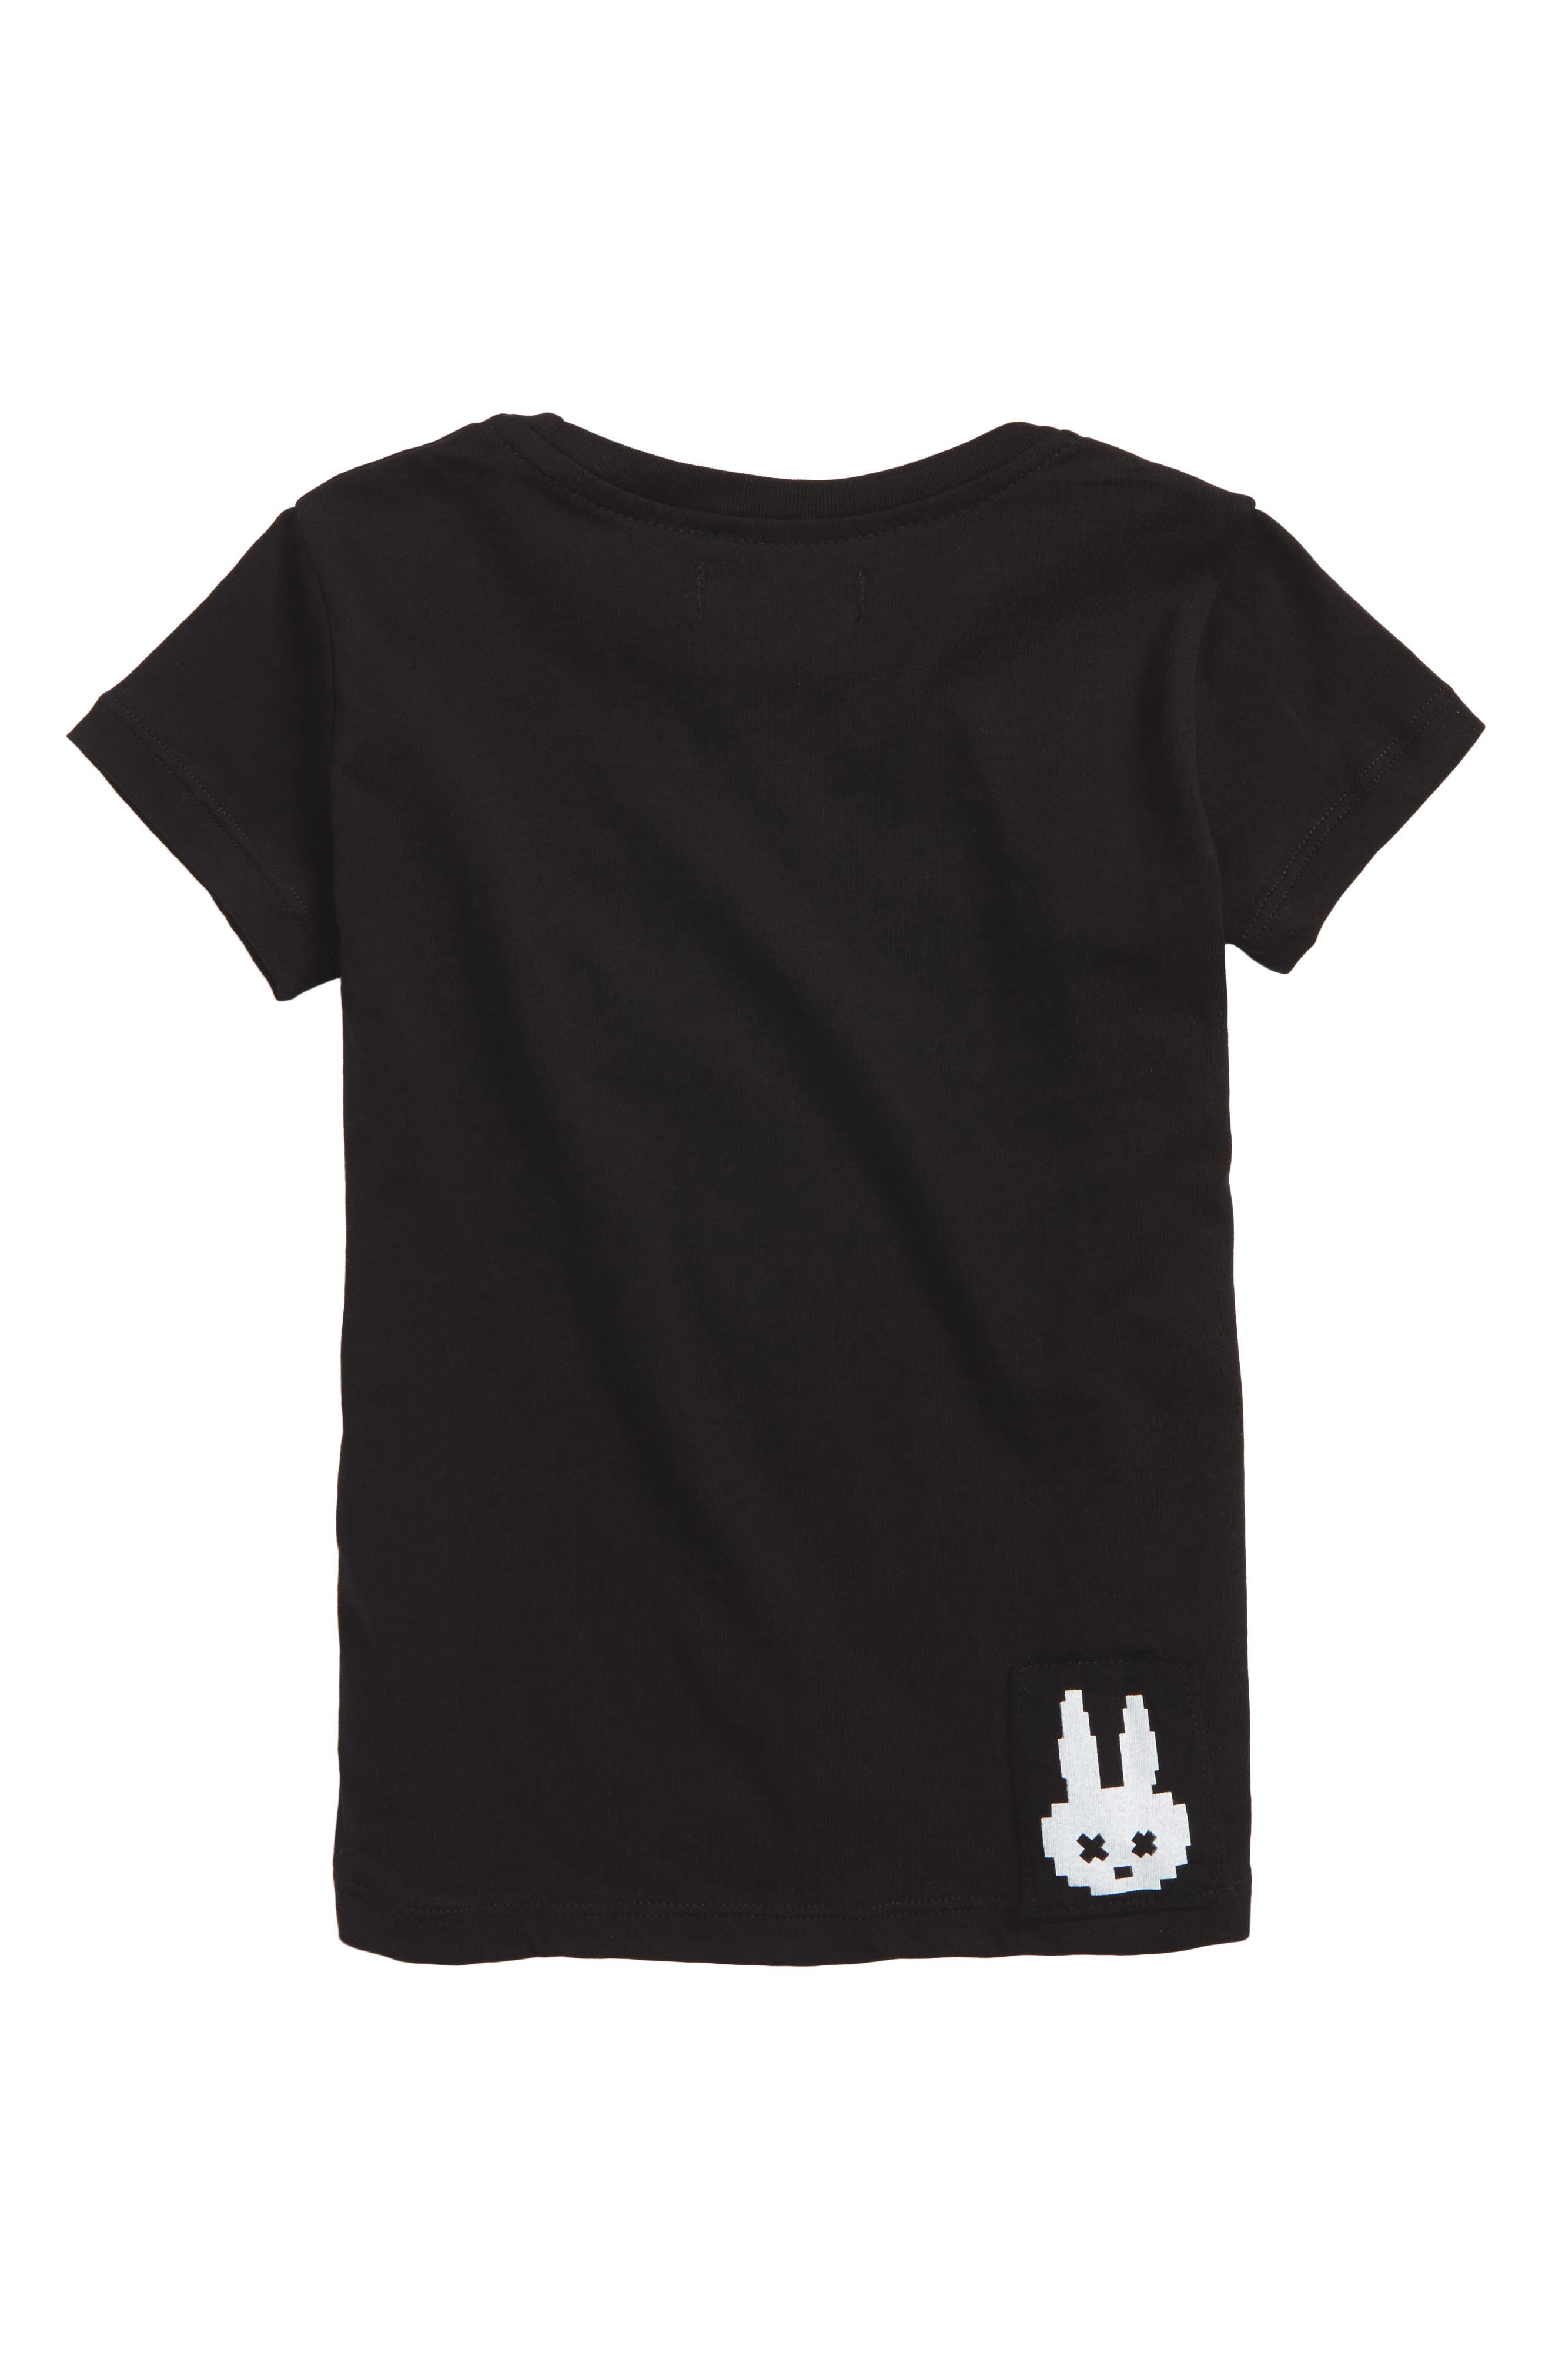 Silver Pirate Bunny Graphic T-Shirt,                             Alternate thumbnail 2, color,                             001